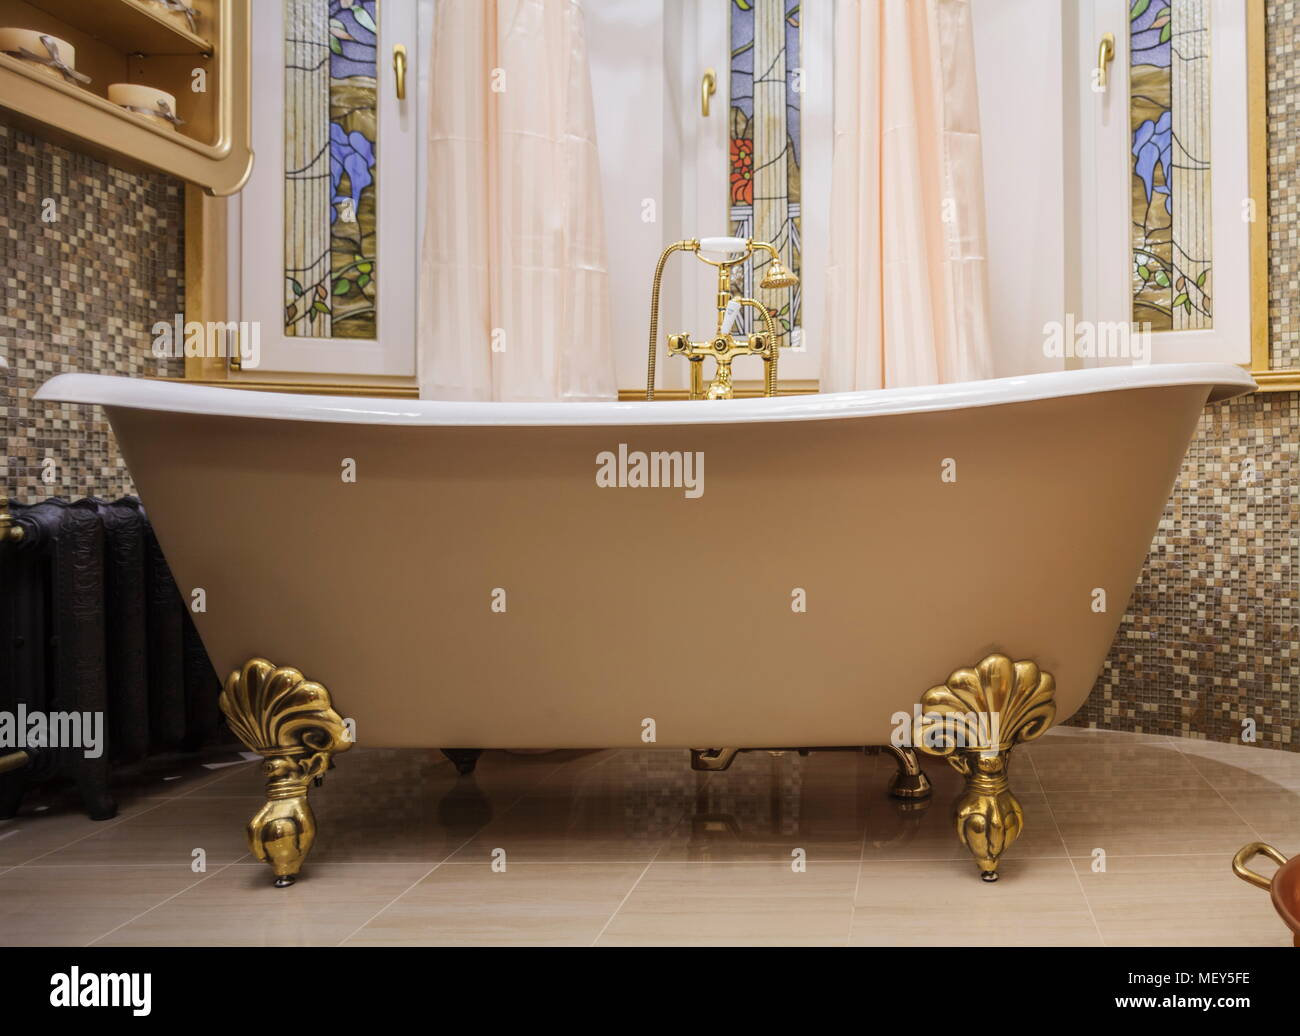 Exceptionnel Bathroom With Old Fashioned Bathtub